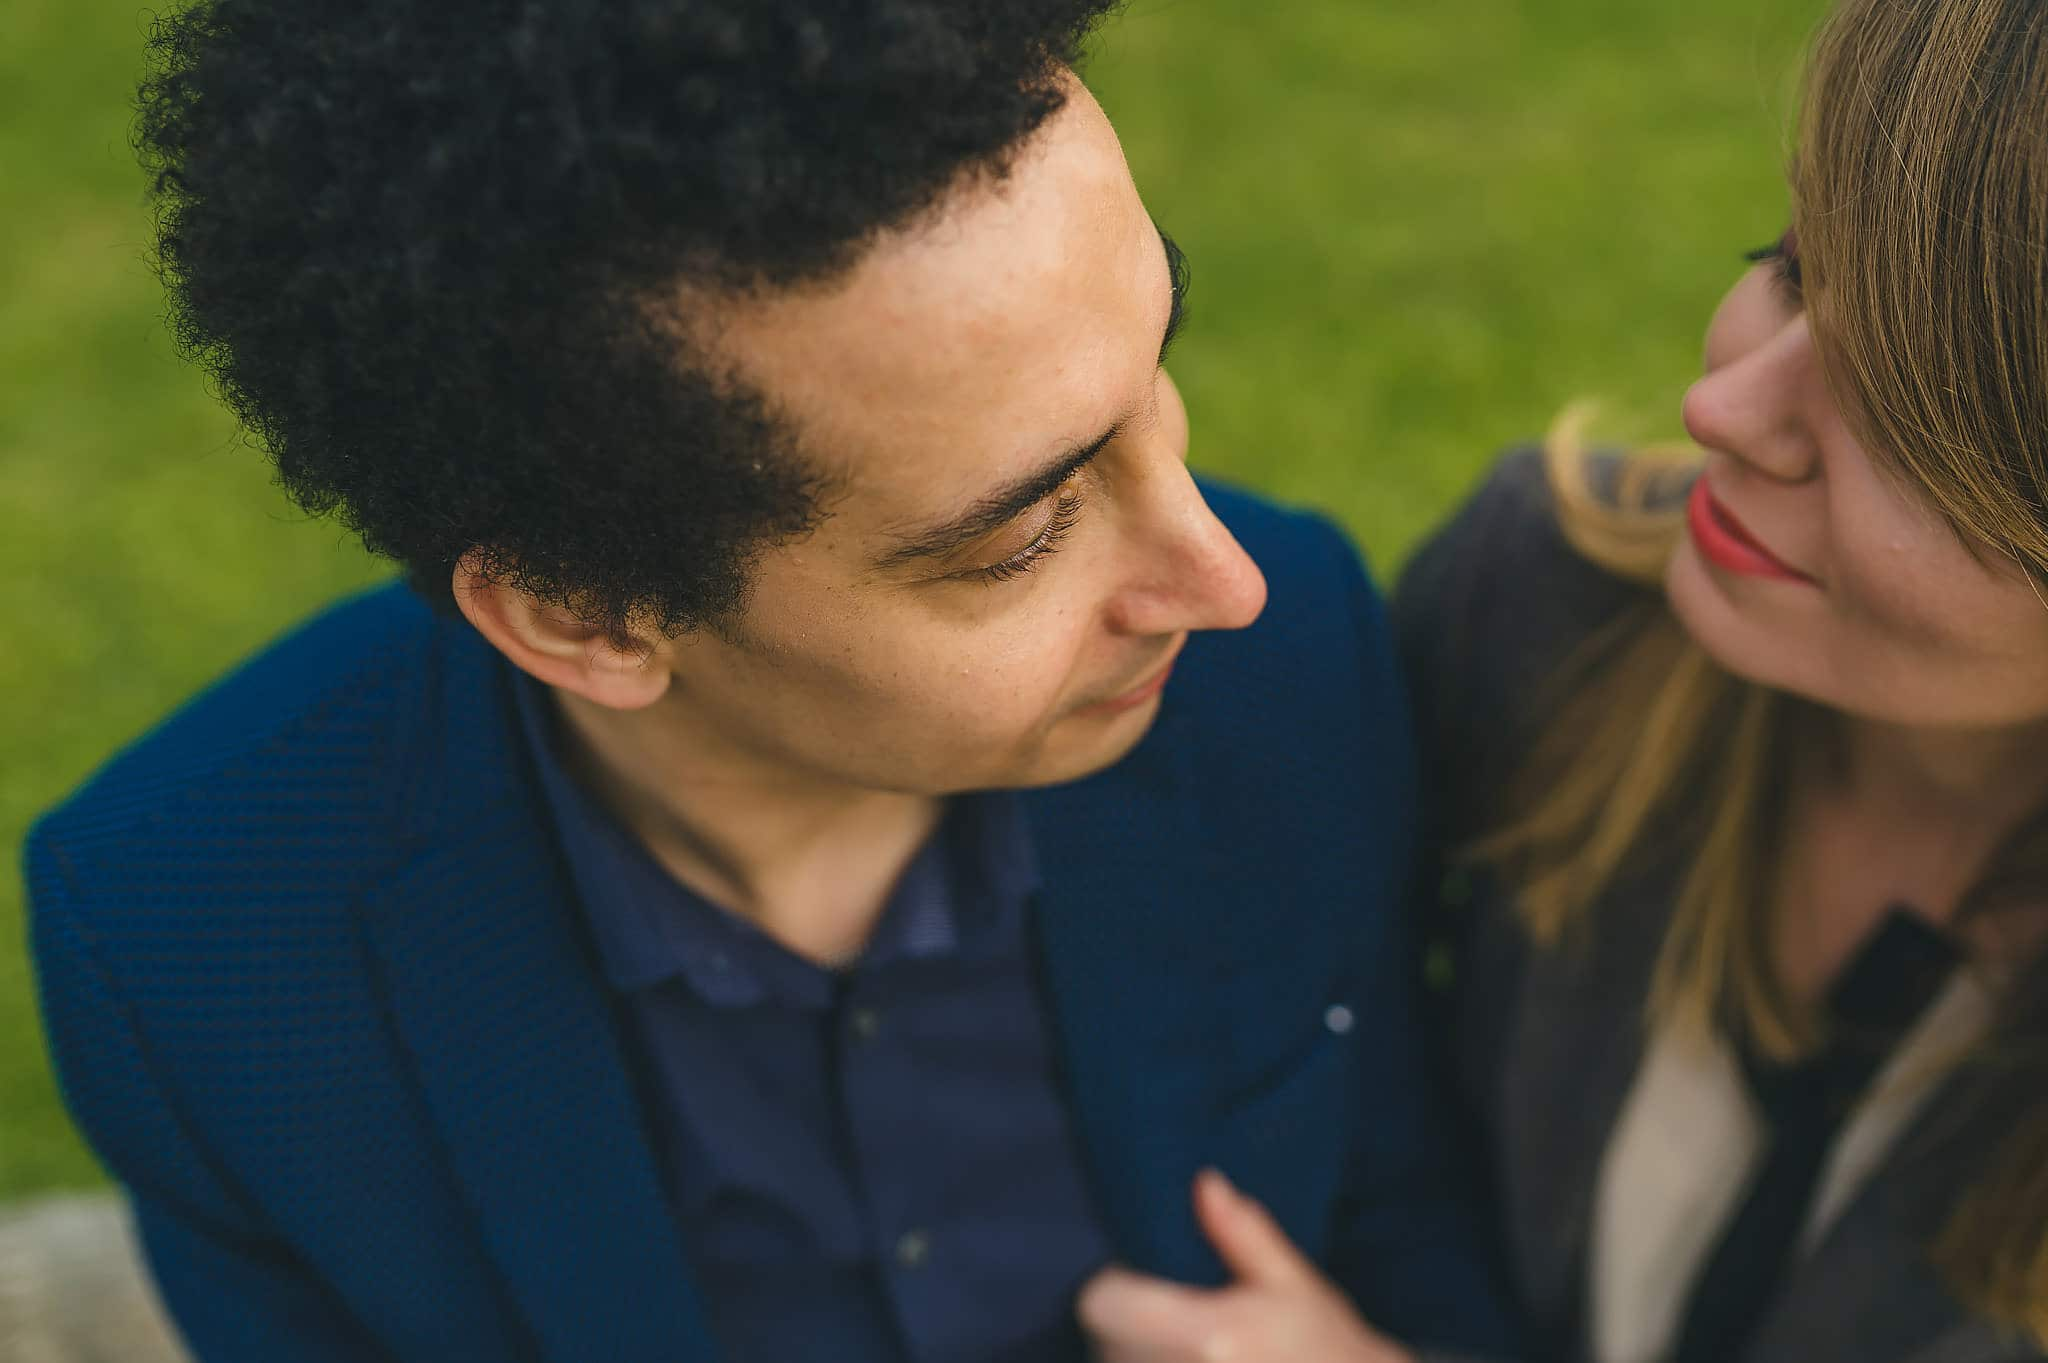 engagement photography worcester 4 - Chris + Malgosia | Engagement photography Worcester